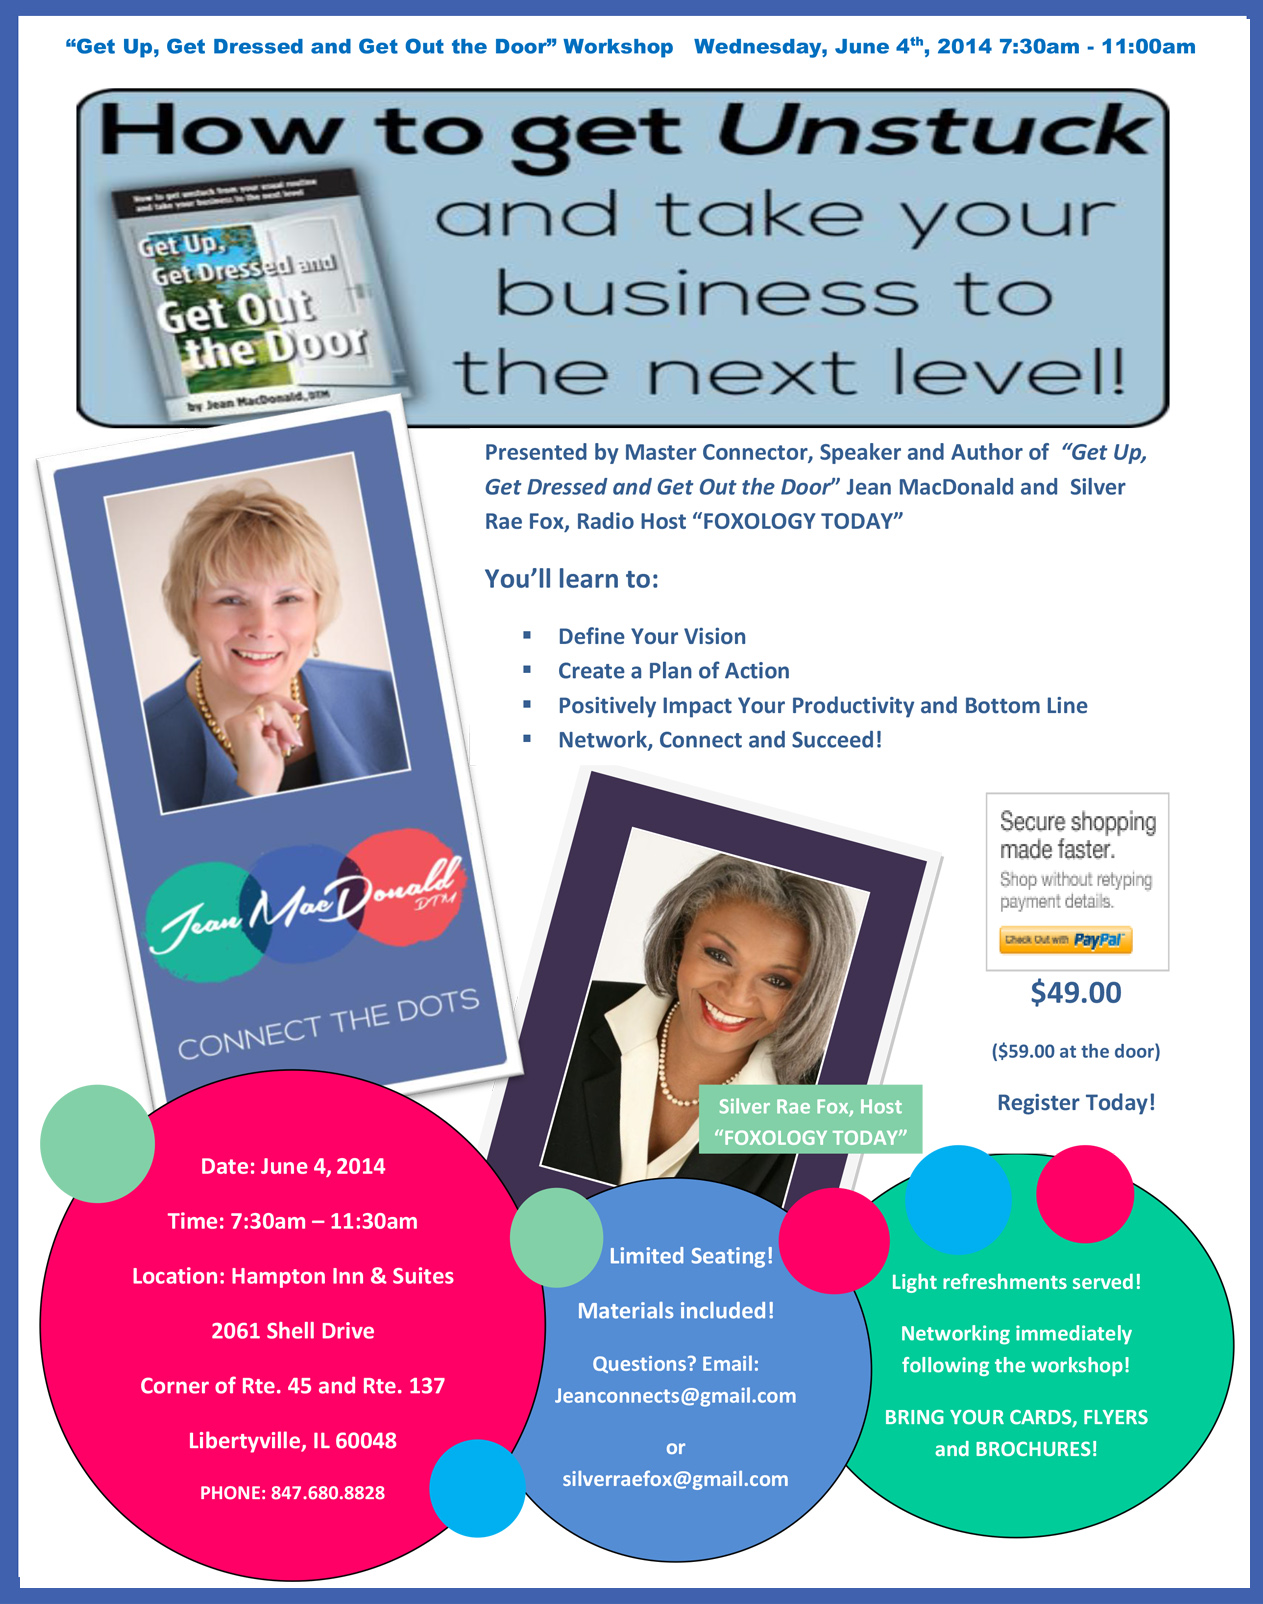 Click on the flyer to view larger and download